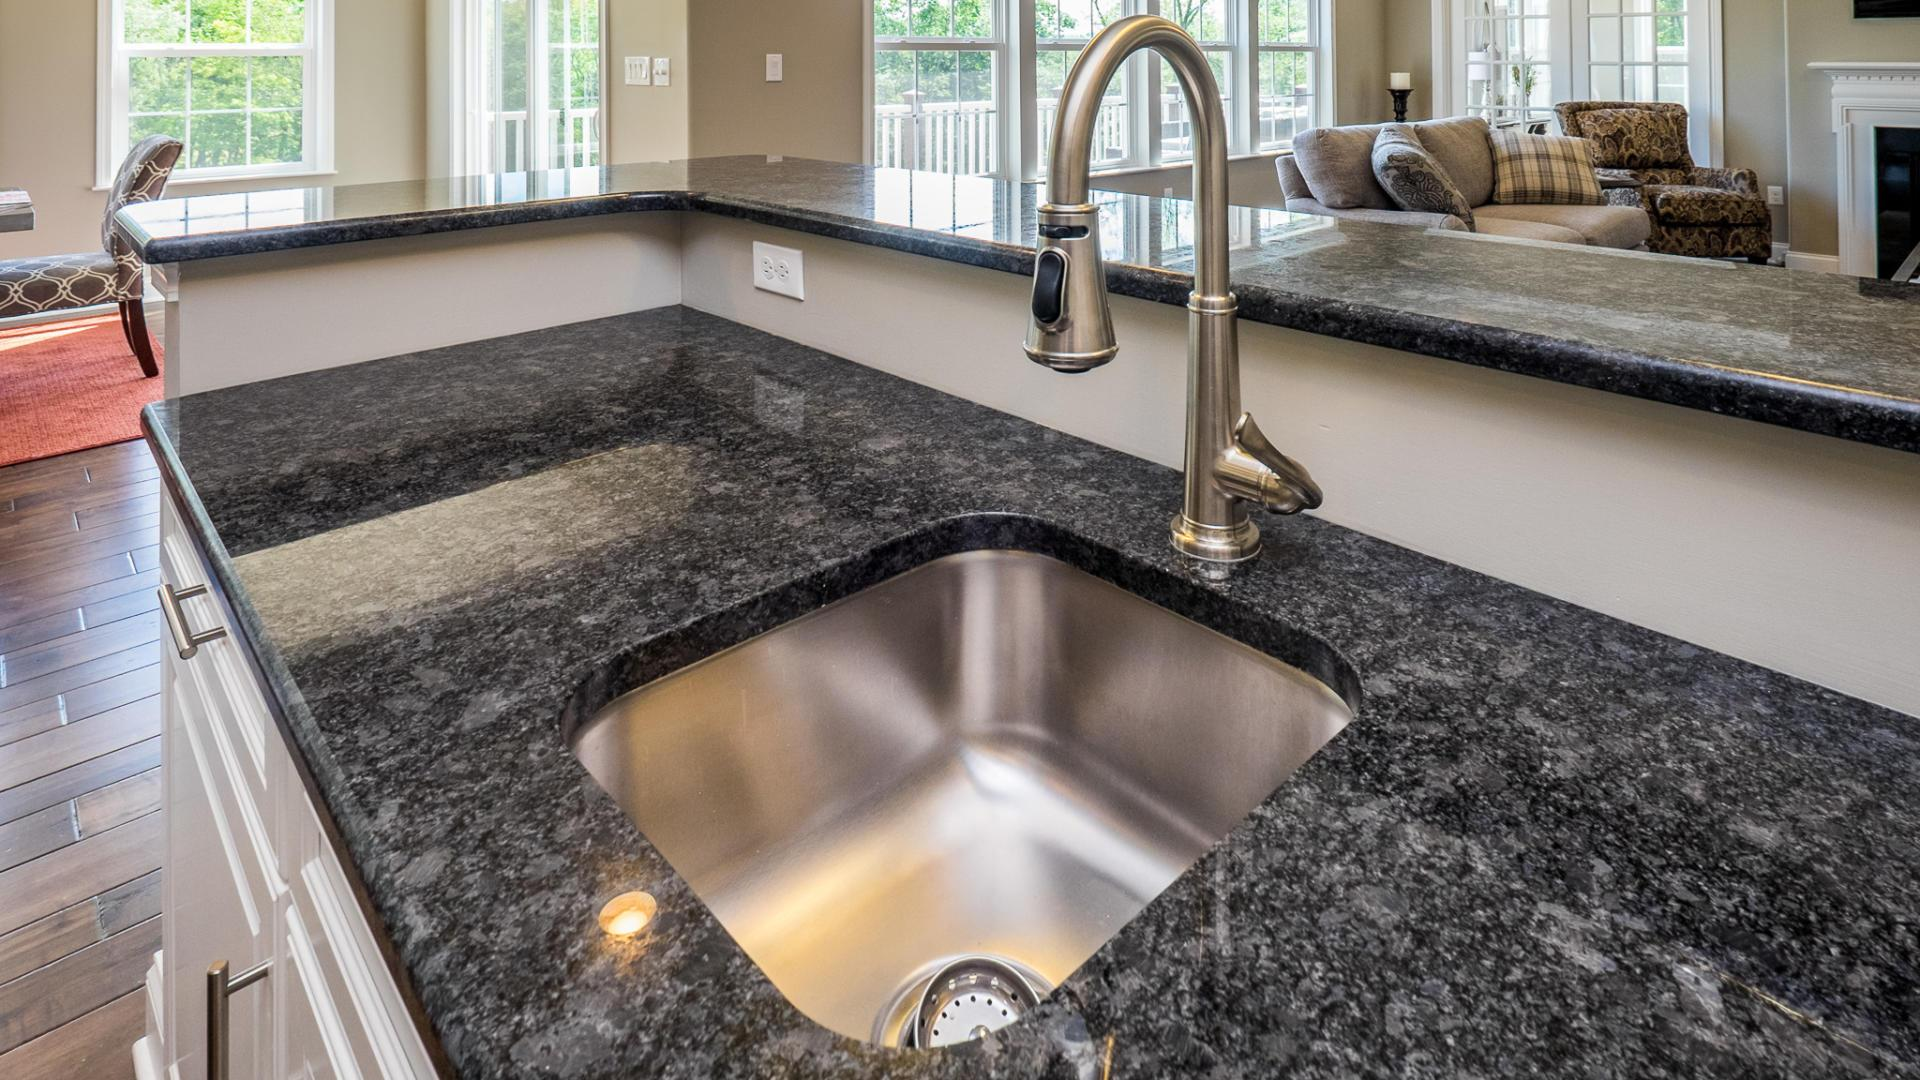 Kitchen featured in the Eisenhower By Maronda Homes in Cincinnati, OH